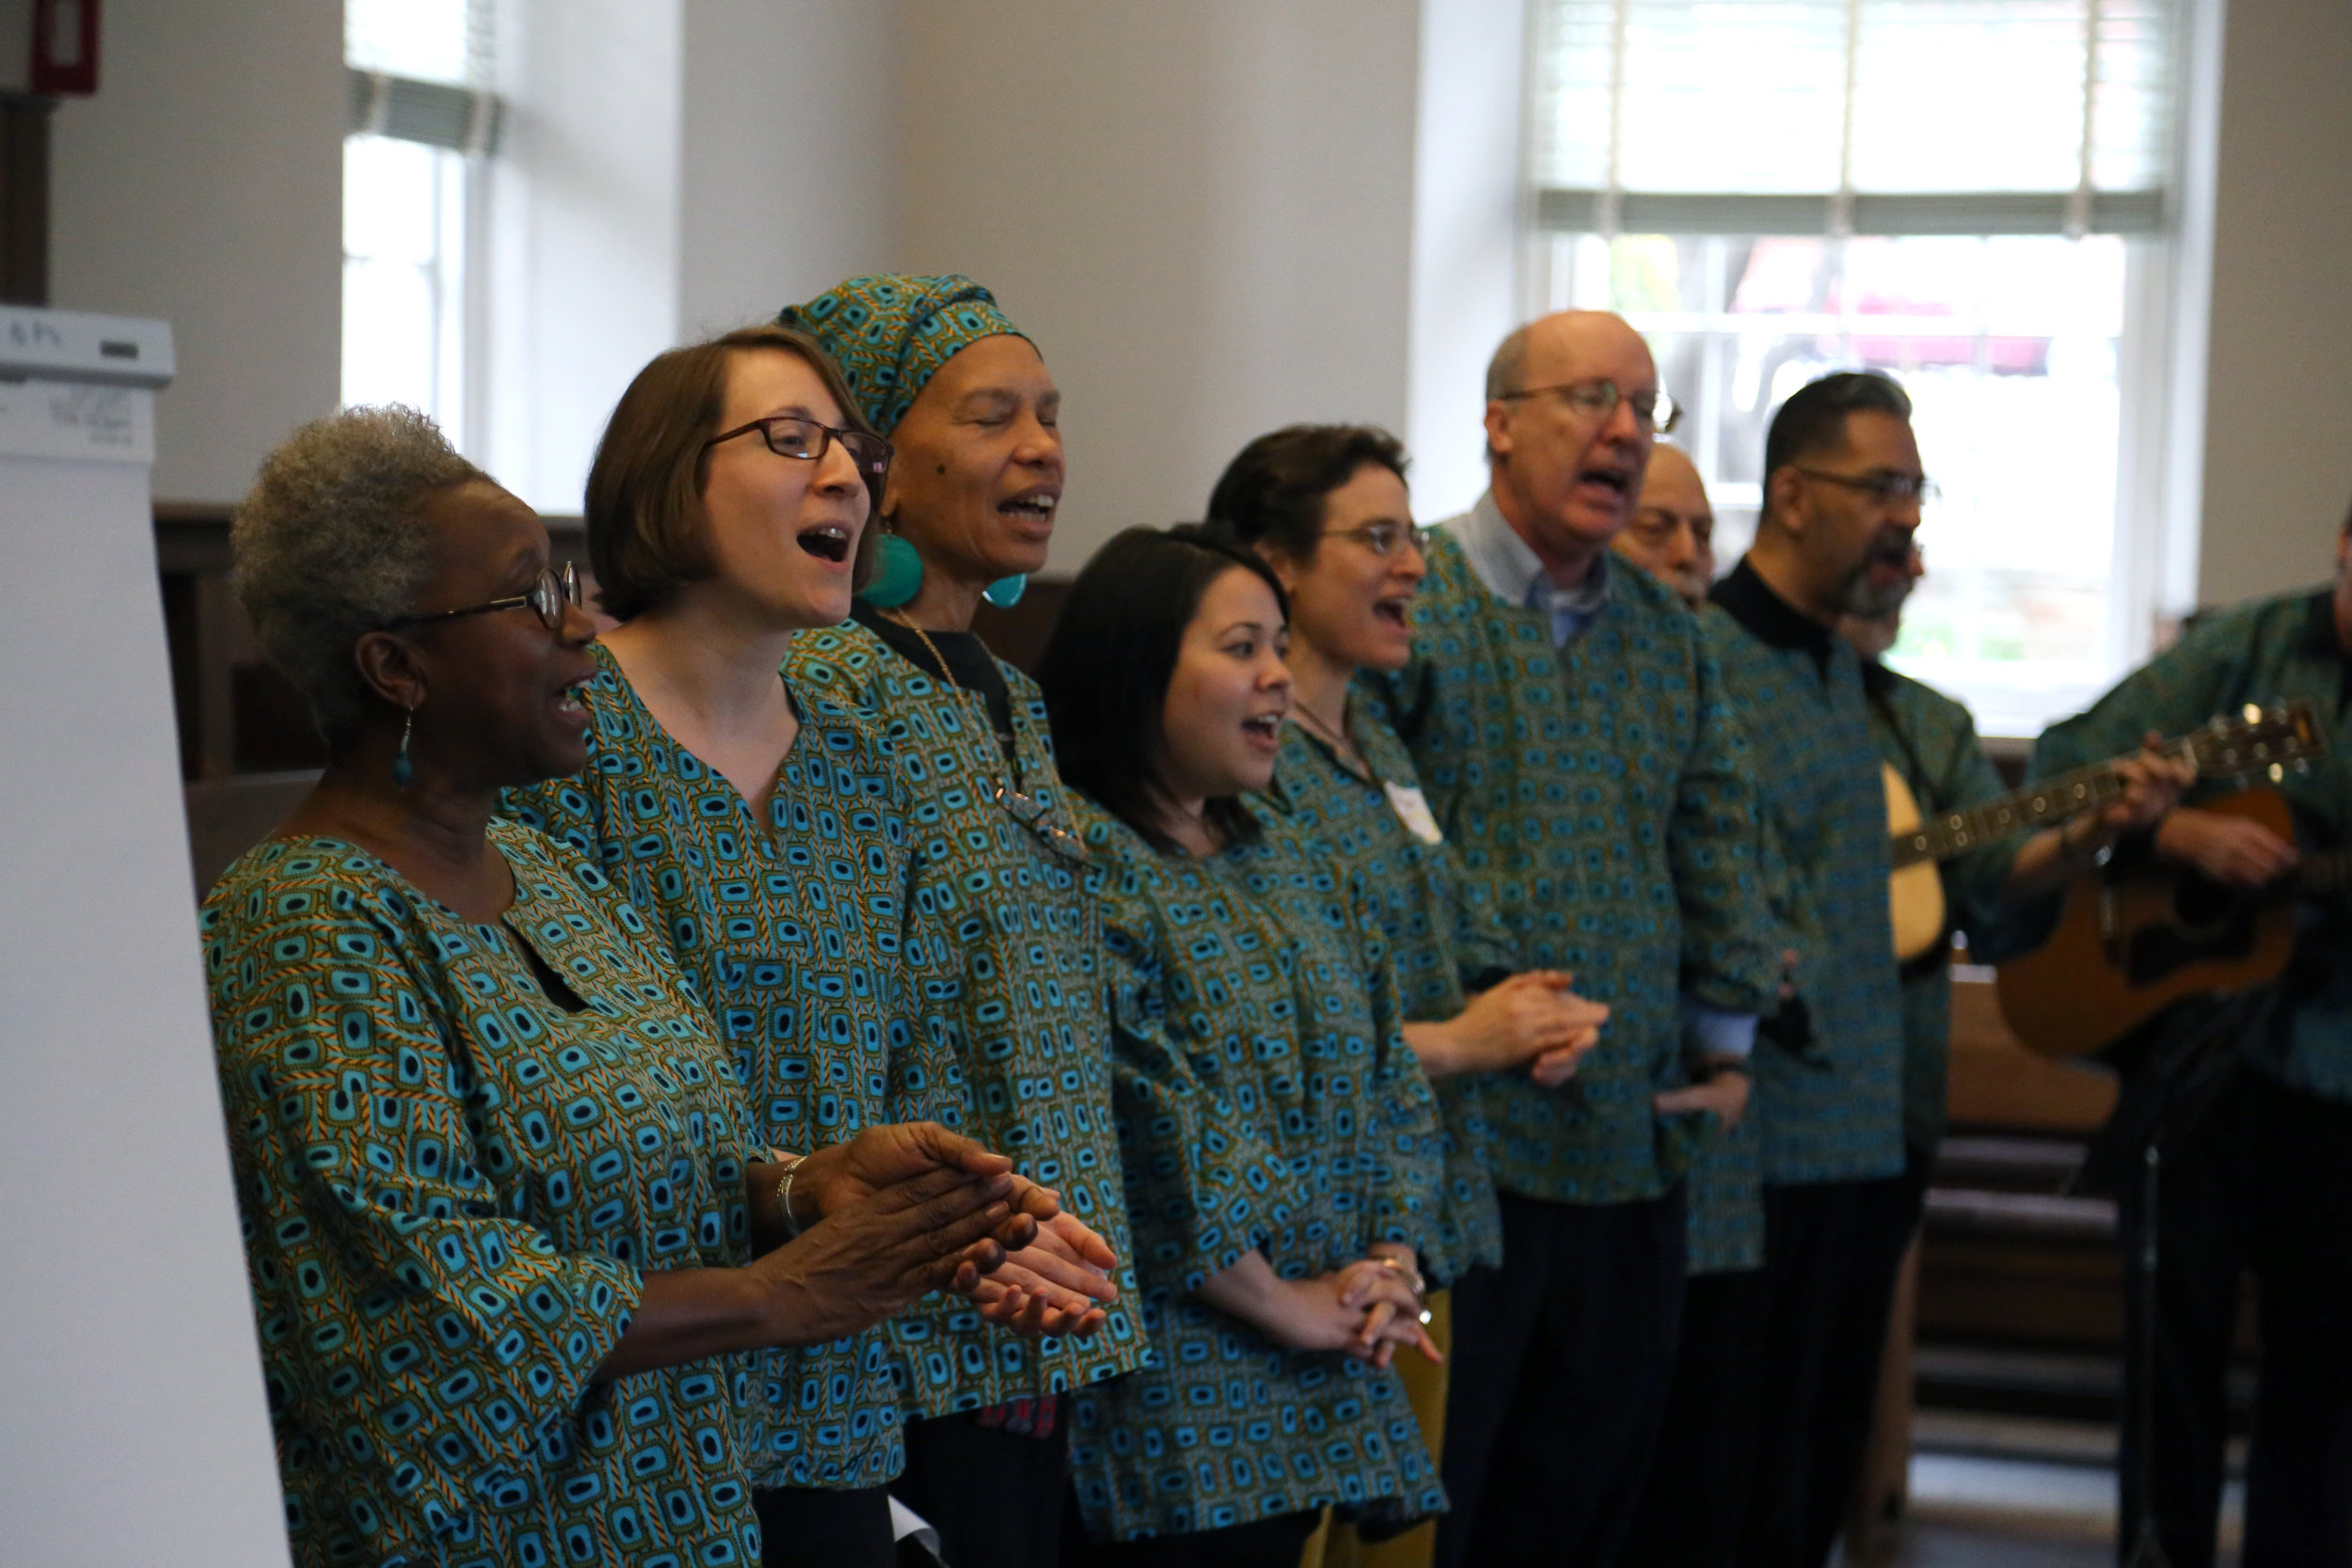 A multiracial group sings at the SURJ DC launch event. Photo by Eric Krupke